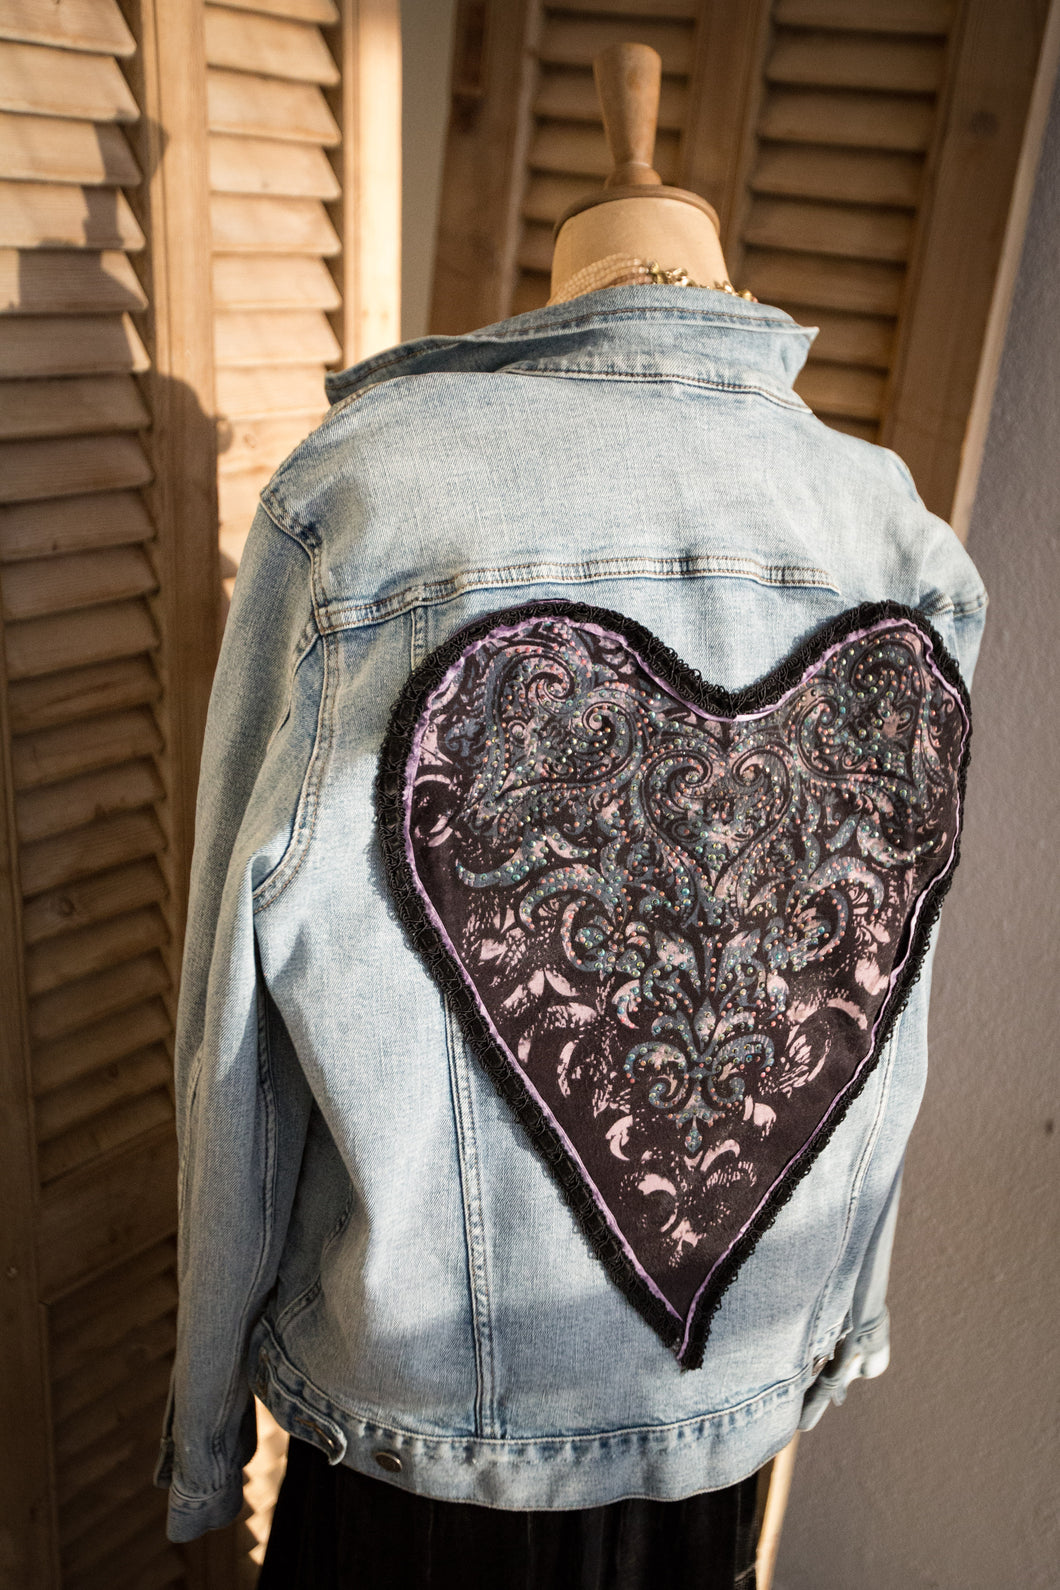 Sparkly Scrolls Heart jeans jacket embellished with rhinestones and velvet ribbon trim